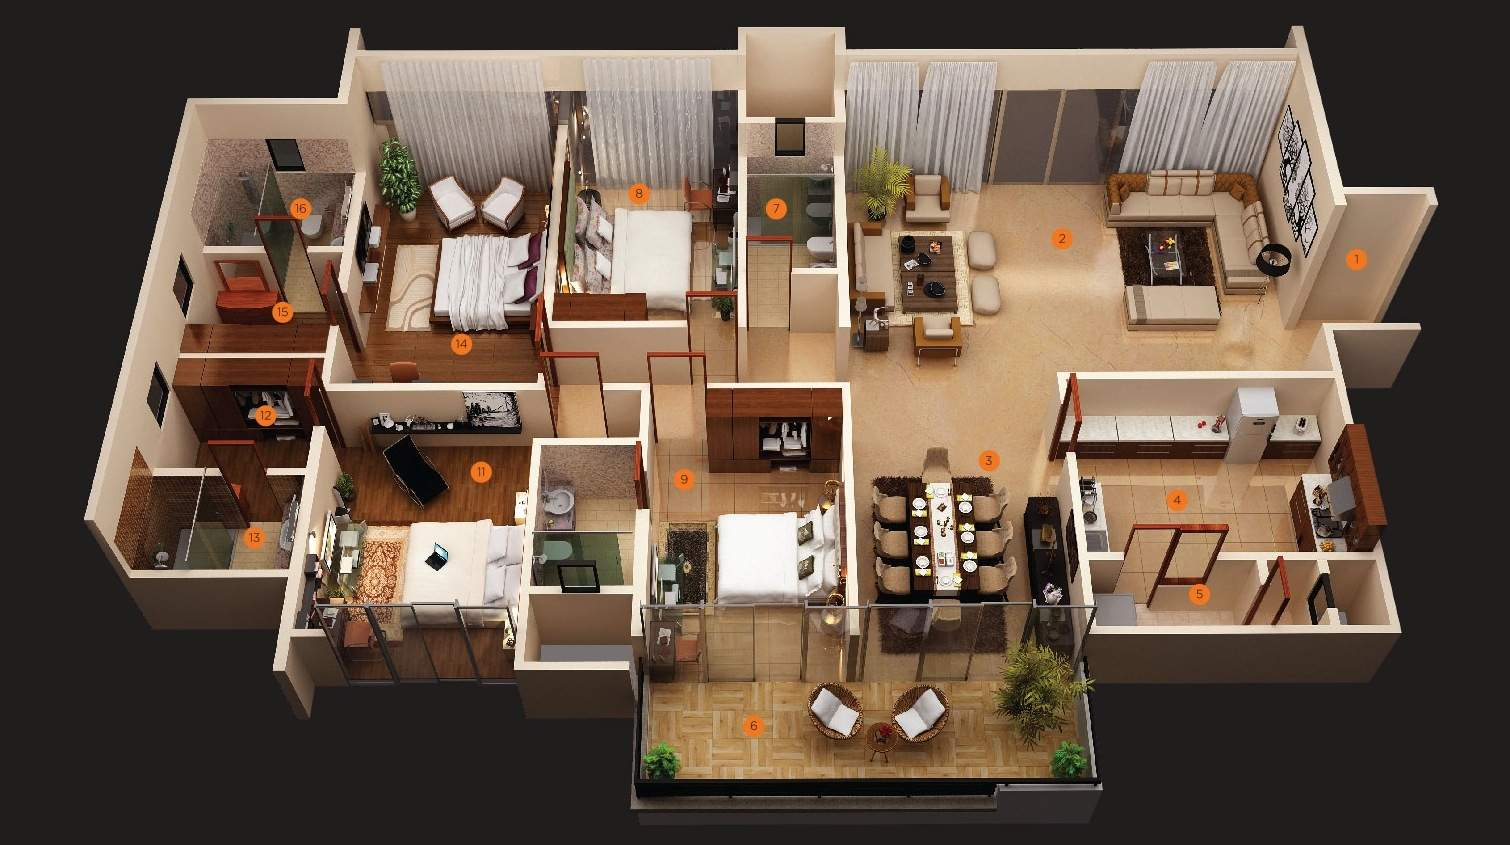 Story Bedroom House Floor Plans Together Plan